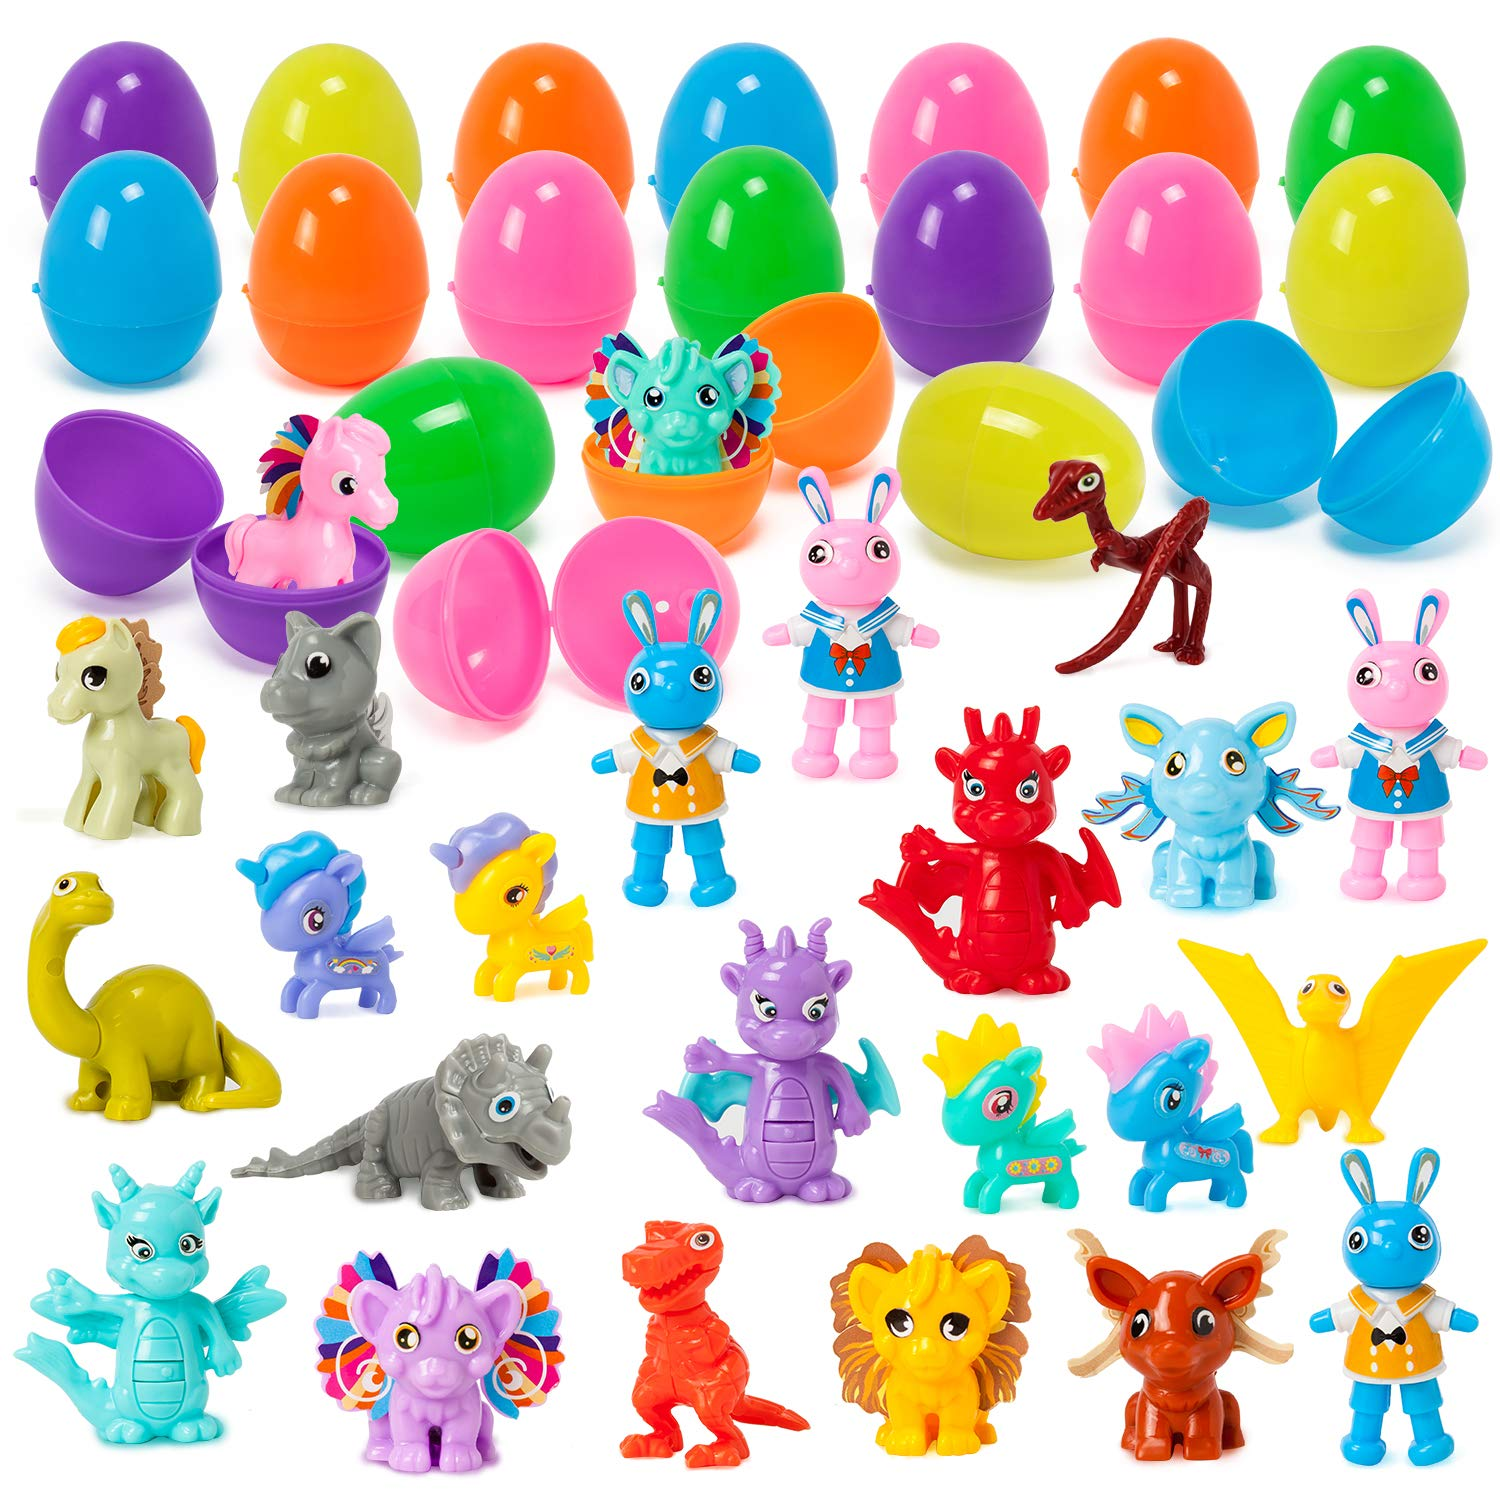 YIHONG 24 Pcs Prefilled Easter Eggs with Mini Assembling Toys Inside for Boys, Surprise Eggs for Easter Hunts, Basket Stuffers, Party Favor